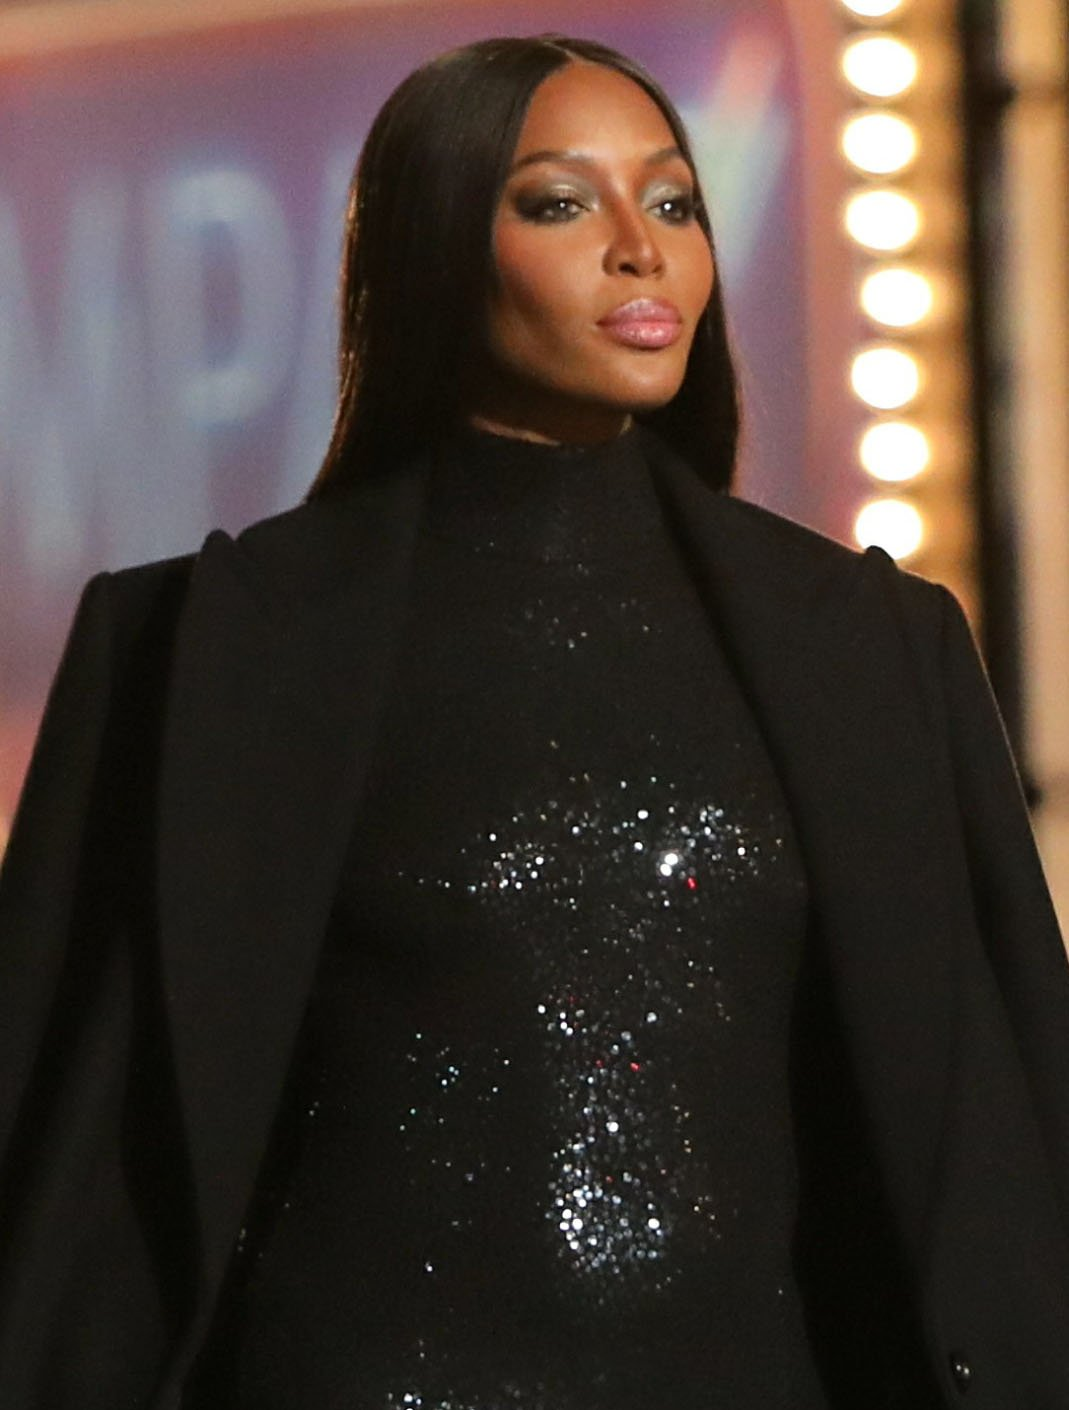 Naomi Campbell wears her hair sleek straight with a middle parting